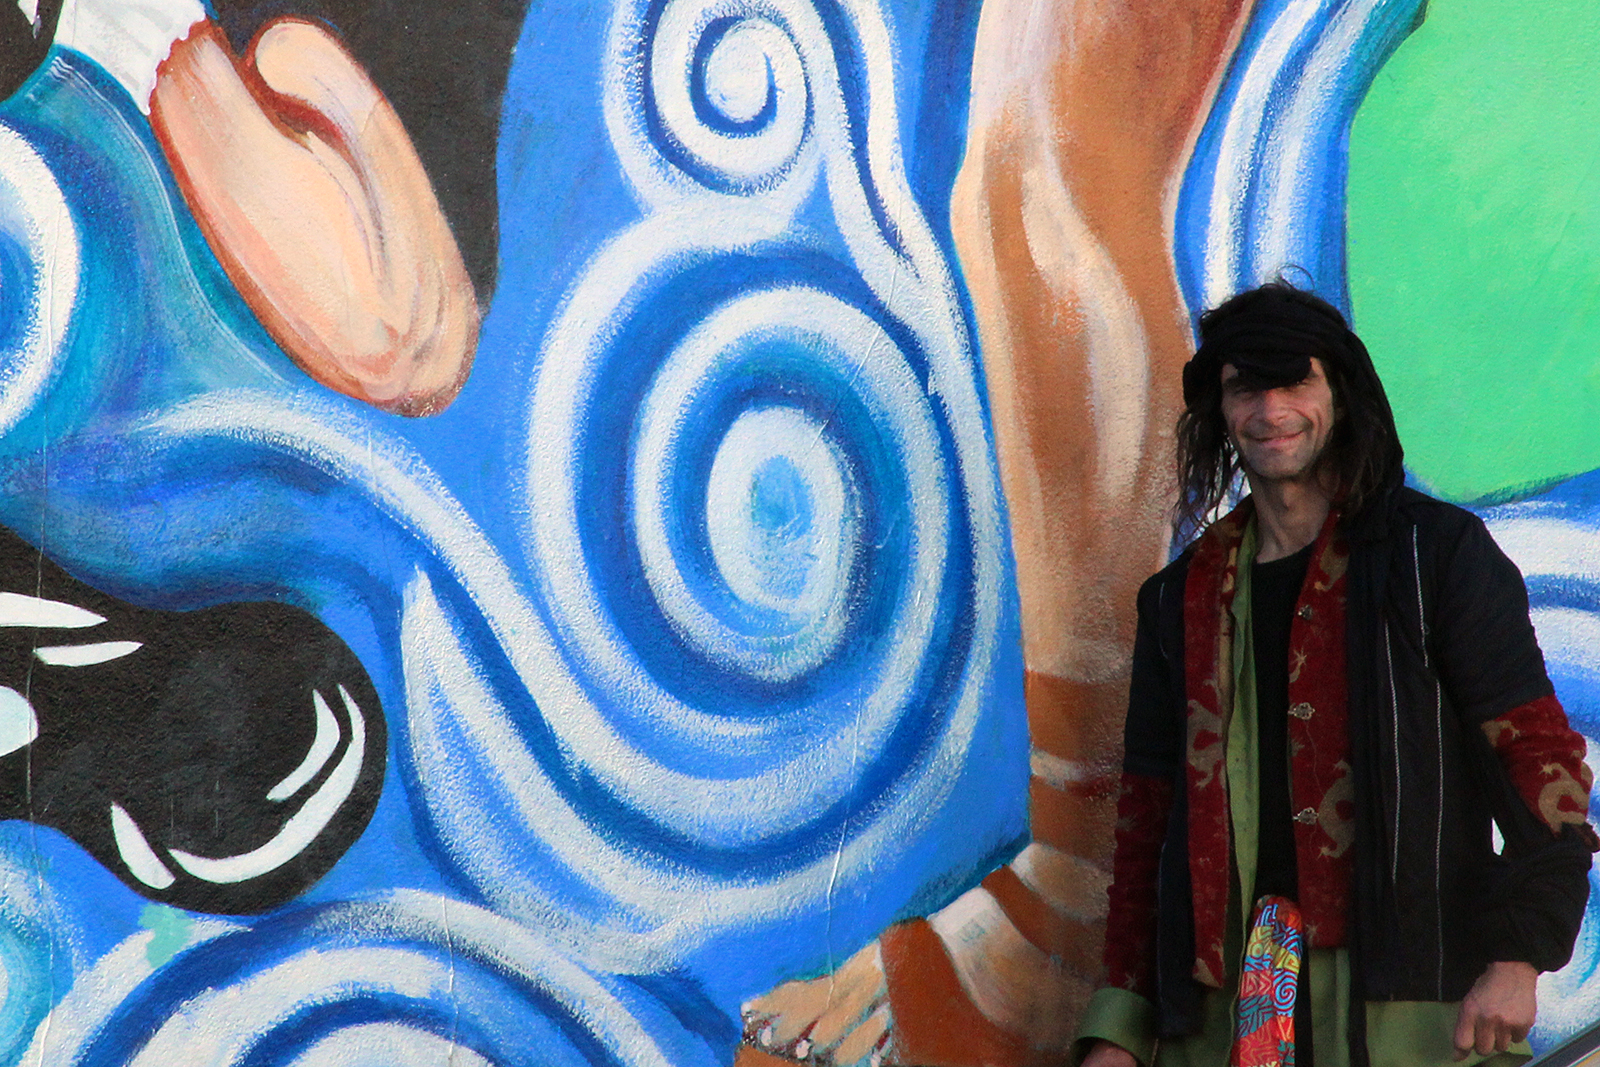 A man stands by a mural near Mission Street.